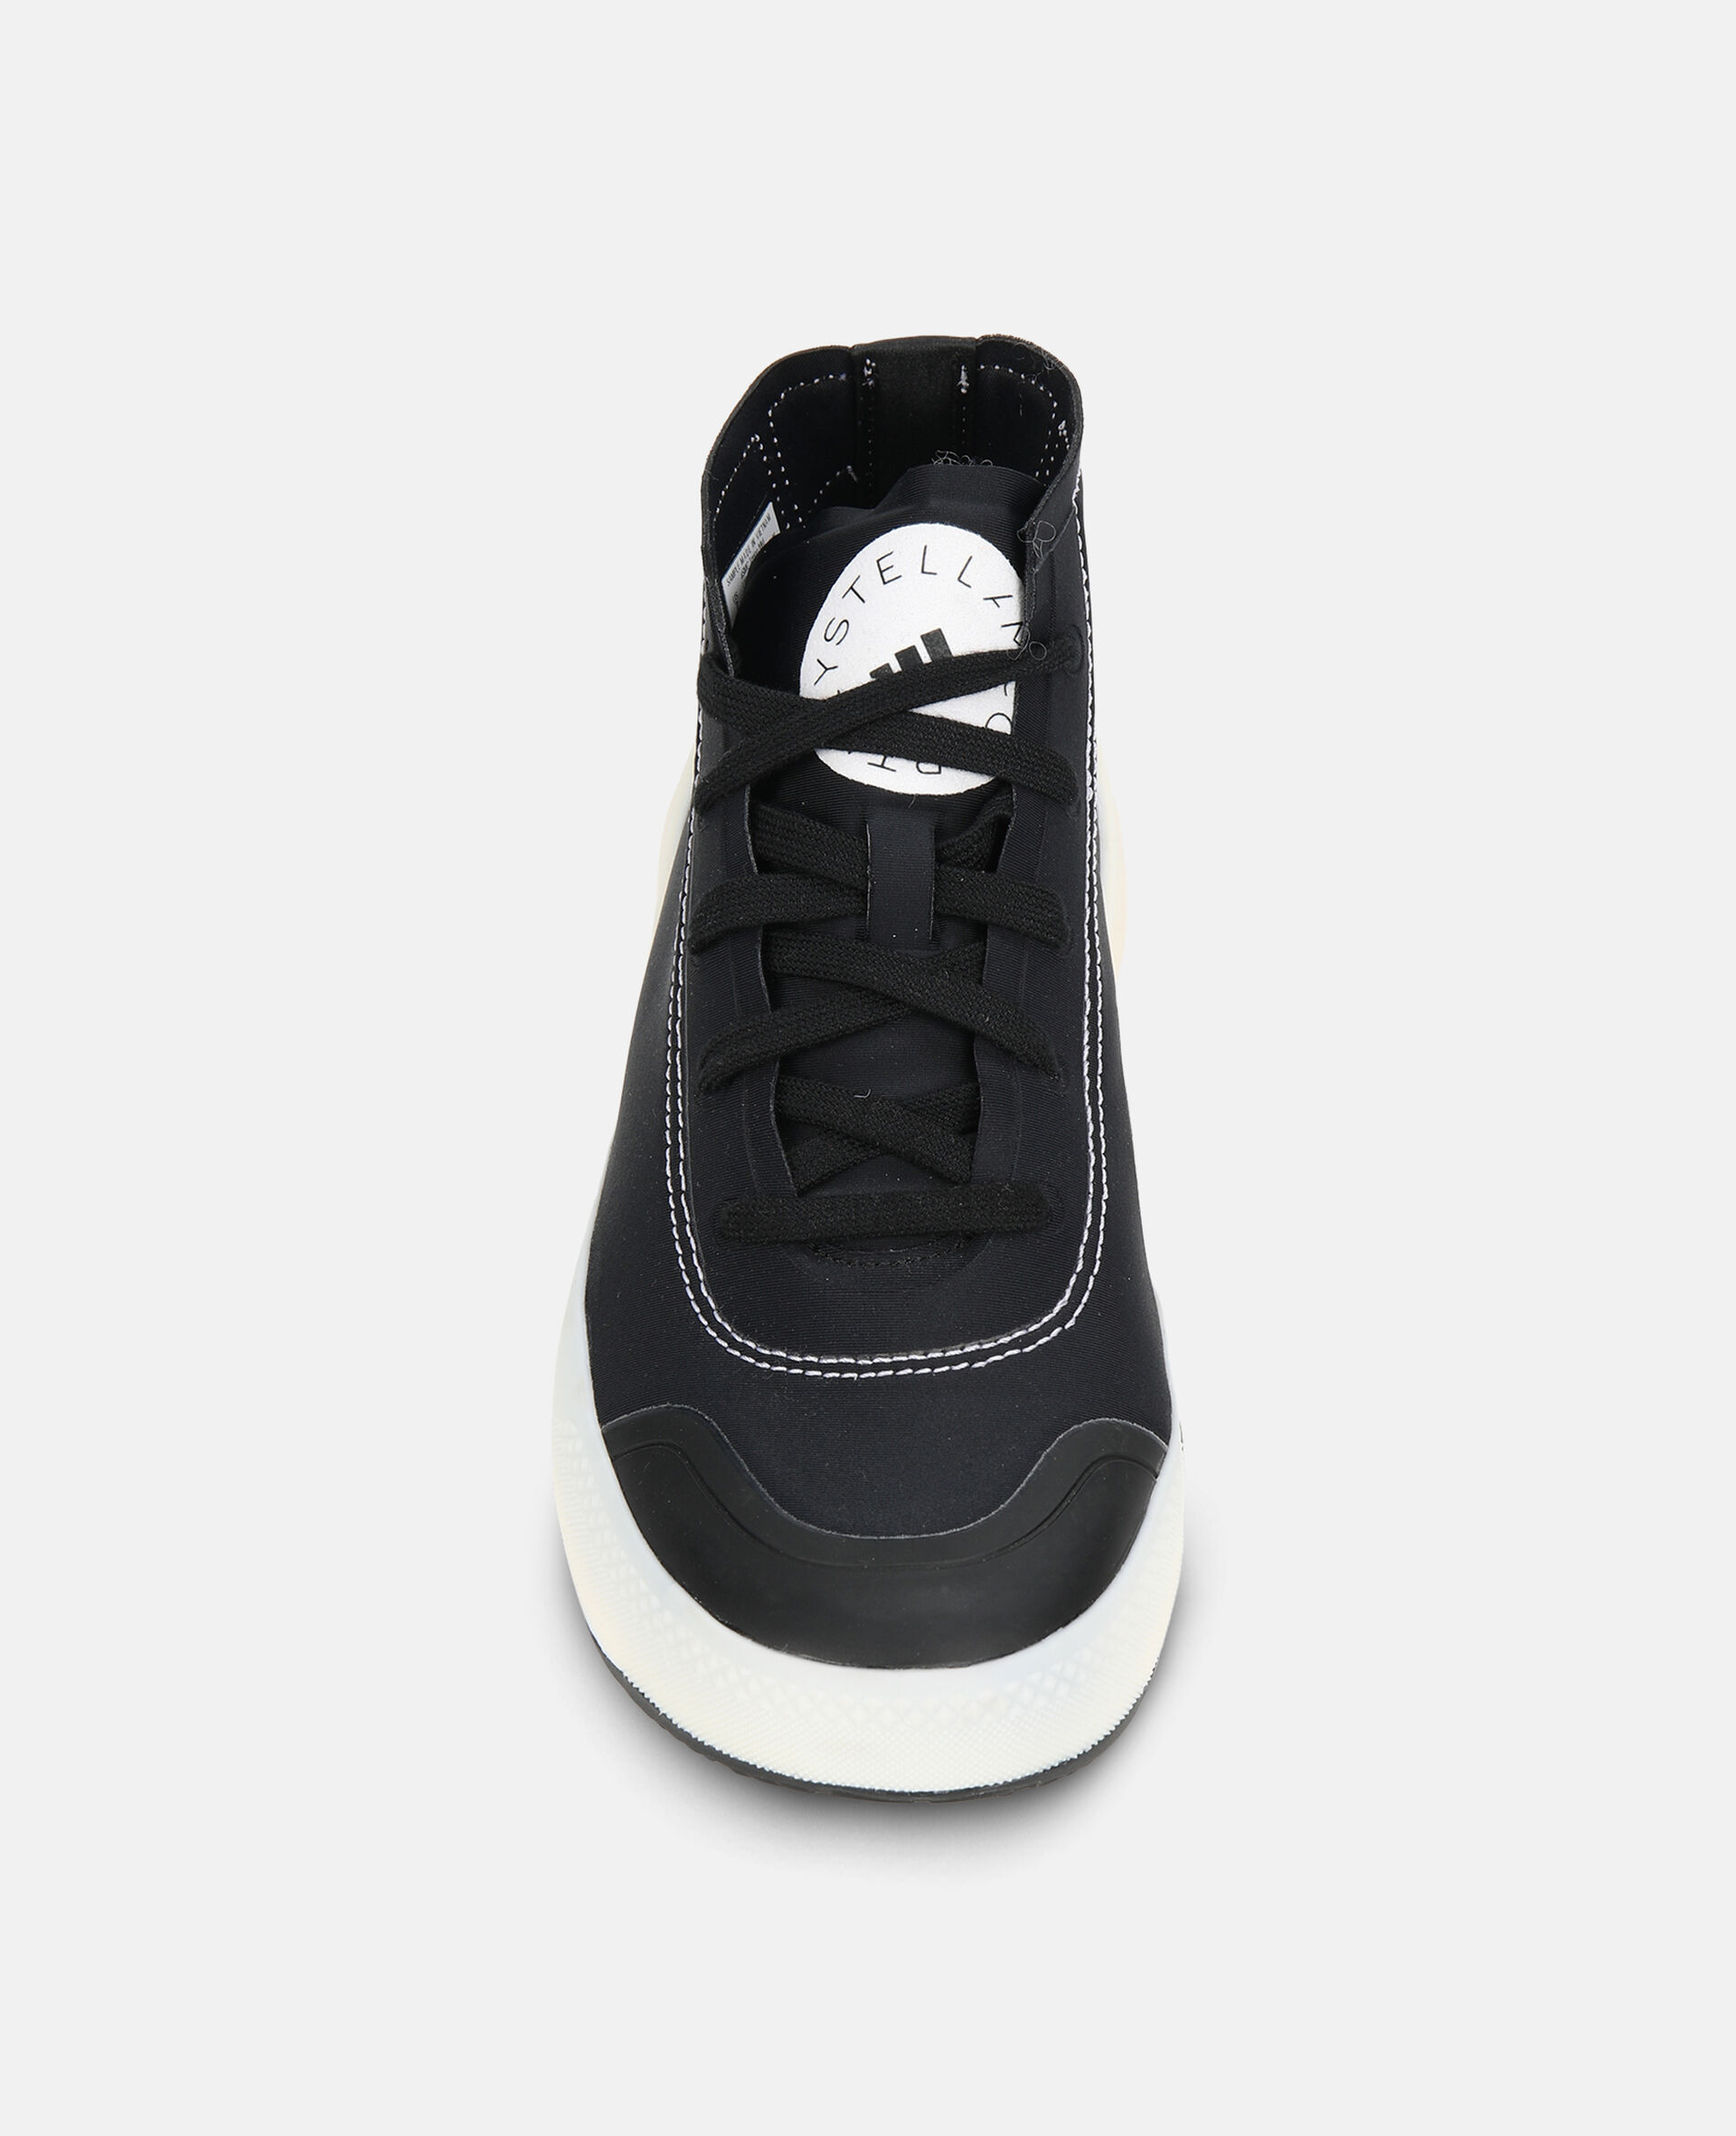 Black Boost Treino Sneakers-Black-large image number 2